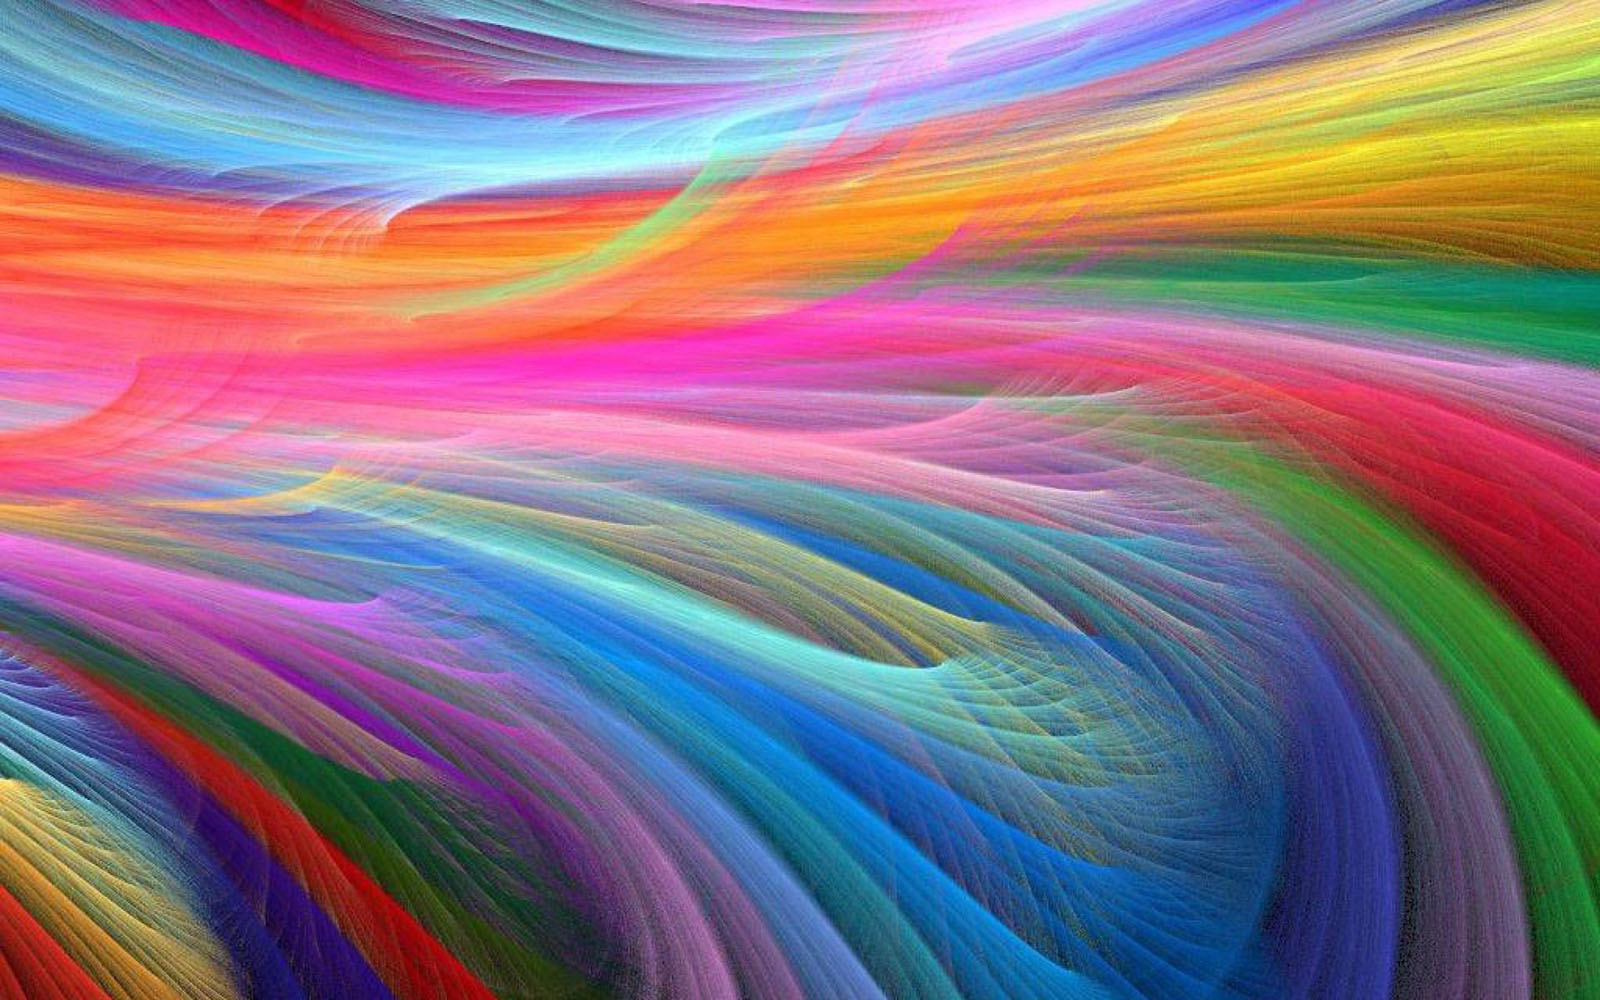 17+ images about Color on Pinterest | Abstract art, Abstract